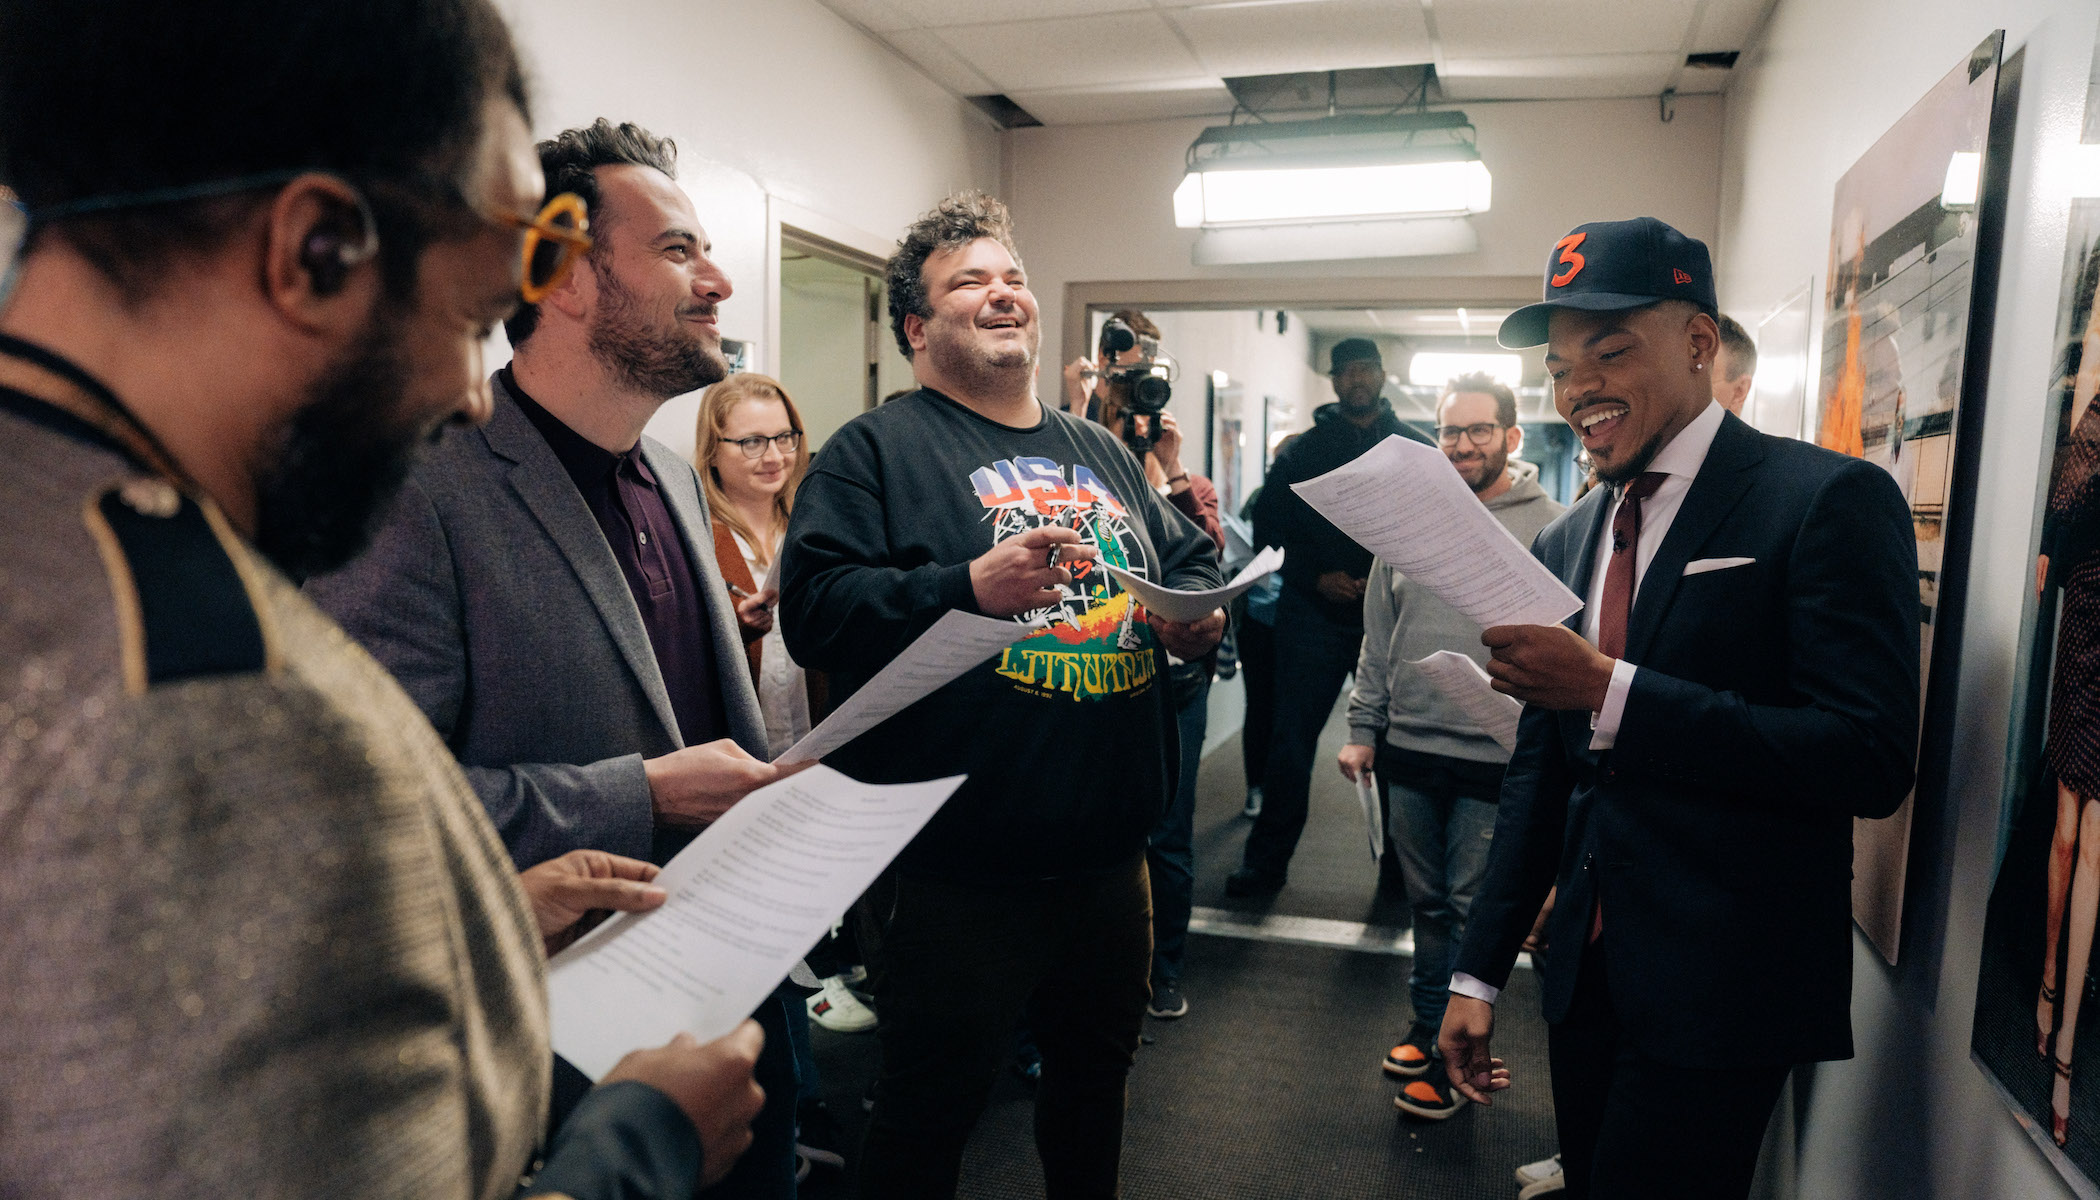 Some Pre-Show Laughs